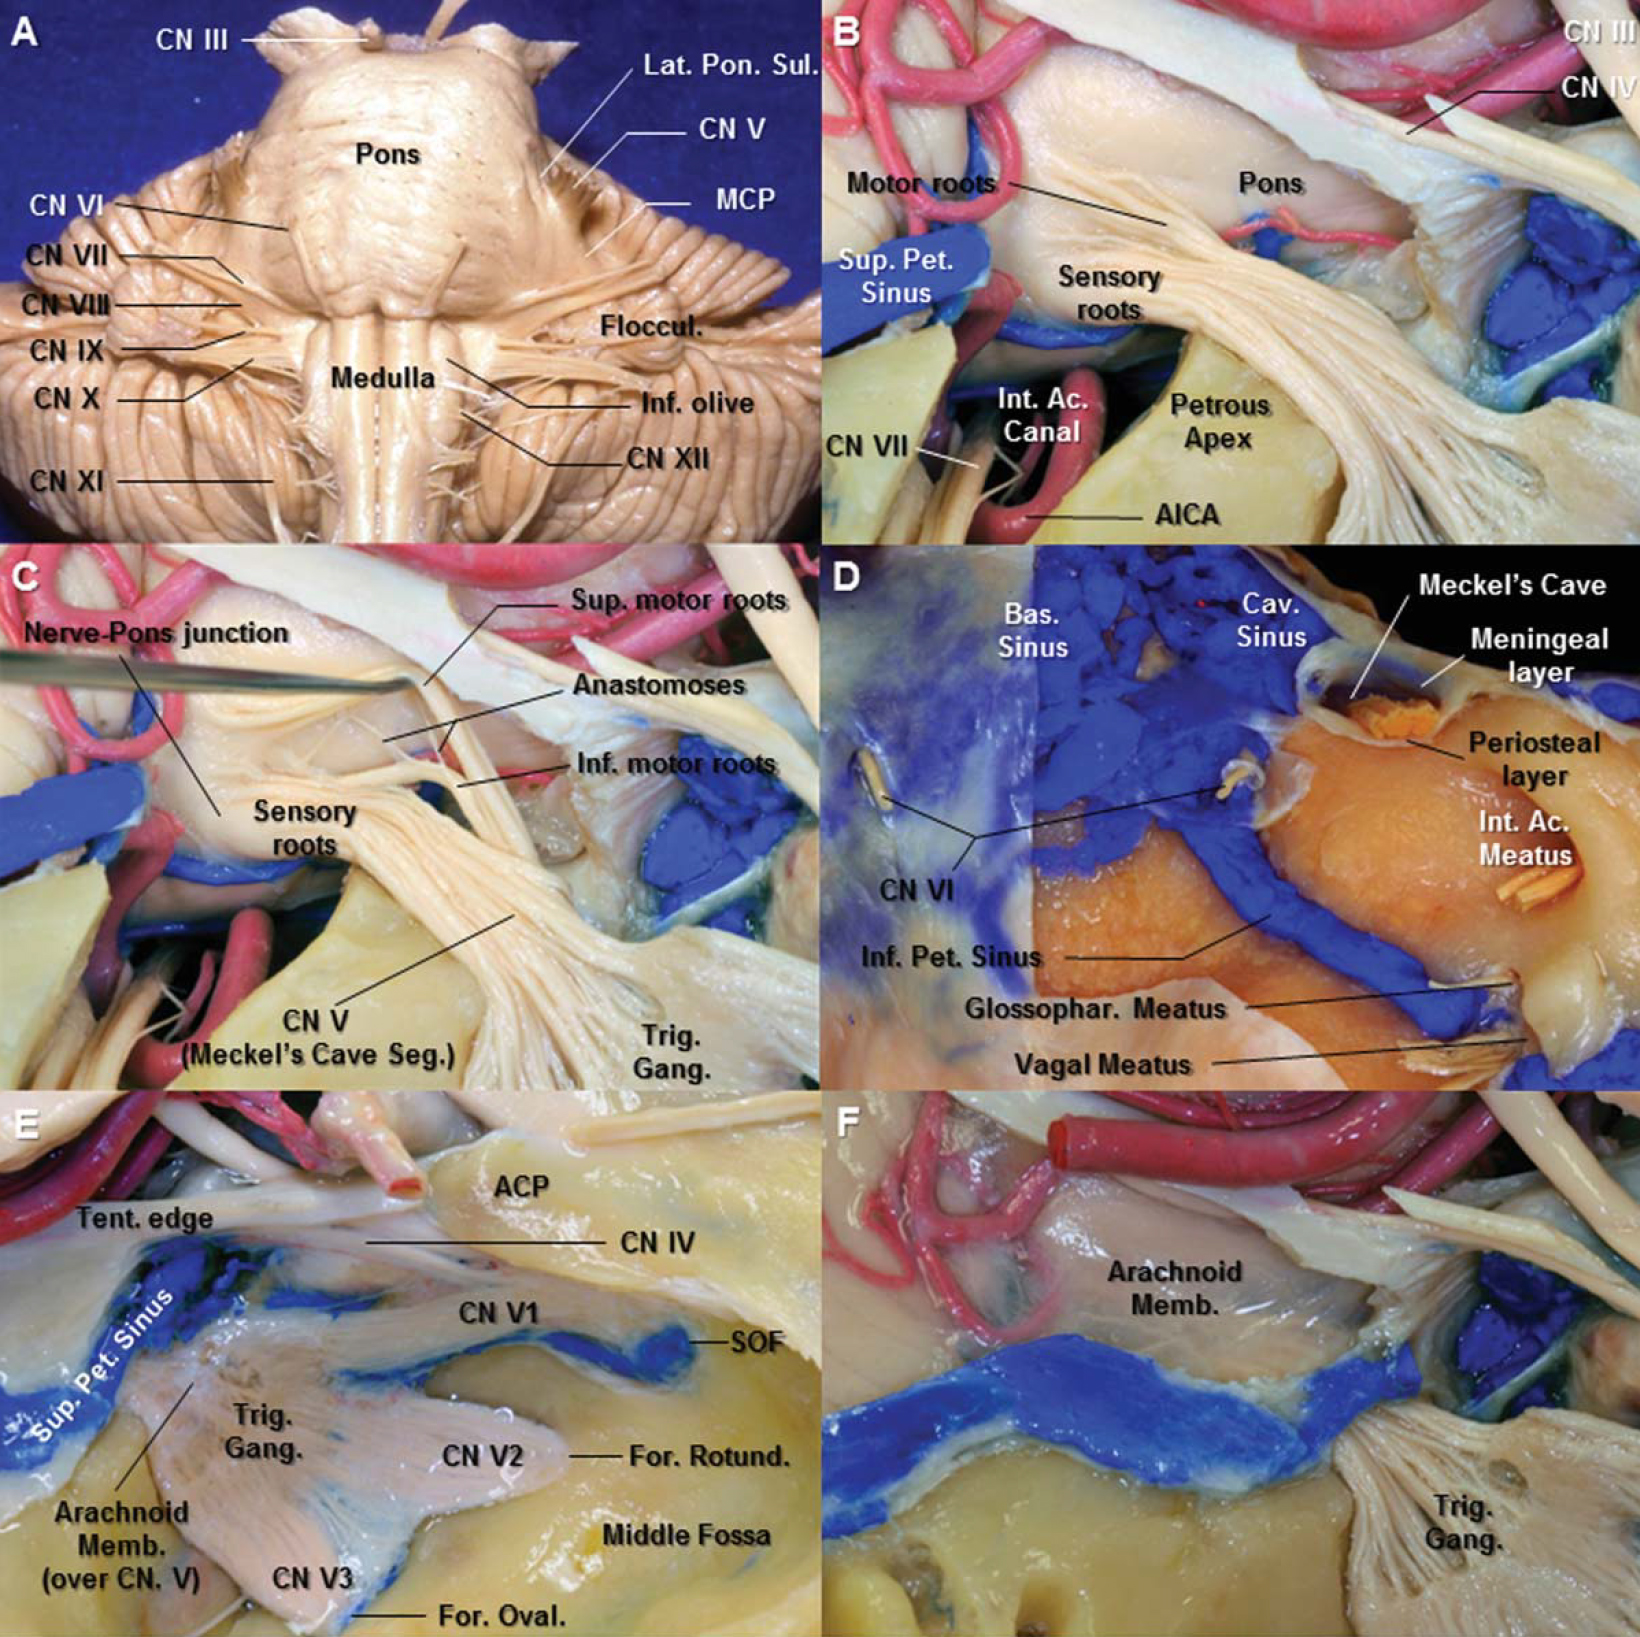 Figure 2. A. Anterior view of the brain stem. The middle cerebellar peduncle is separated from the pons by a lateral pontine sulcus. Just lateral to the lateral pontine sulcus is the emergence of the trigeminal nerve. From the microsurgical standpoint, the apparent origin of the trigeminal nerve can be considered as the limit between the pons and the middle cerebellar peduncle. B. Lateral view of the right trigeminal root entry zone. The tentorium and the occipital lobe have been removed to expose the root entry zone of the trigeminal nerve. The small roots emerge from the pons superomedial to the large sensory root. The roof of the internal acoustic canal has been removed. C. The two motor rootlets groups of the trigeminal nerve, a primary superior and a secondary inferior motor rootlets, are visualized after superior retraction of the superior motor group from the sensory root. D. The dura of the anterior aspect of the posterior fossa has been removed to expose the basilar plexus, cavernous sinus, and inferior petrosal sinus. Meckel's cave is a cleft-like dural pocket that originates from the dura propria of the posterior fossa. The cave is situated at the trigeminal impression between the meningeal layer (dura propria) and the periosteal layer of dura. E. The arachnoid membrane from the posterior fossa extends to Meckel's cave, forming a pocket within the cave, continues along the rootlets of the trigeminal nerve. F. The arachnoid membrane over the trigeminal root has been removed. The superior petrosal sinus extends medially through the upper edge of the porus of Meckel's cave and above the trigeminal nerve to join the cavernous sinus. Abbreviations: Ac., acoustic; ACP., anterior clinoid process; AICA., anterior inferior cerebellar artery; Bas., basilar; Cav., cavernous; CN., cranial nerve; For., foramen; Gang., ganglion; Glossophar., glossopharyngeal; Inf., inferior; Int., internal; MCP., middle cerebellar peduncle; Memb., membrane; Oval., ovale; Pet., petrosal; Rotund., rotundum; Seg., segment; SOF., superior orbital fissure; Sup., superior; Tent., tentorium; Trig., trigeminal. (Images courtesy of AL Rhoton, Jr.)